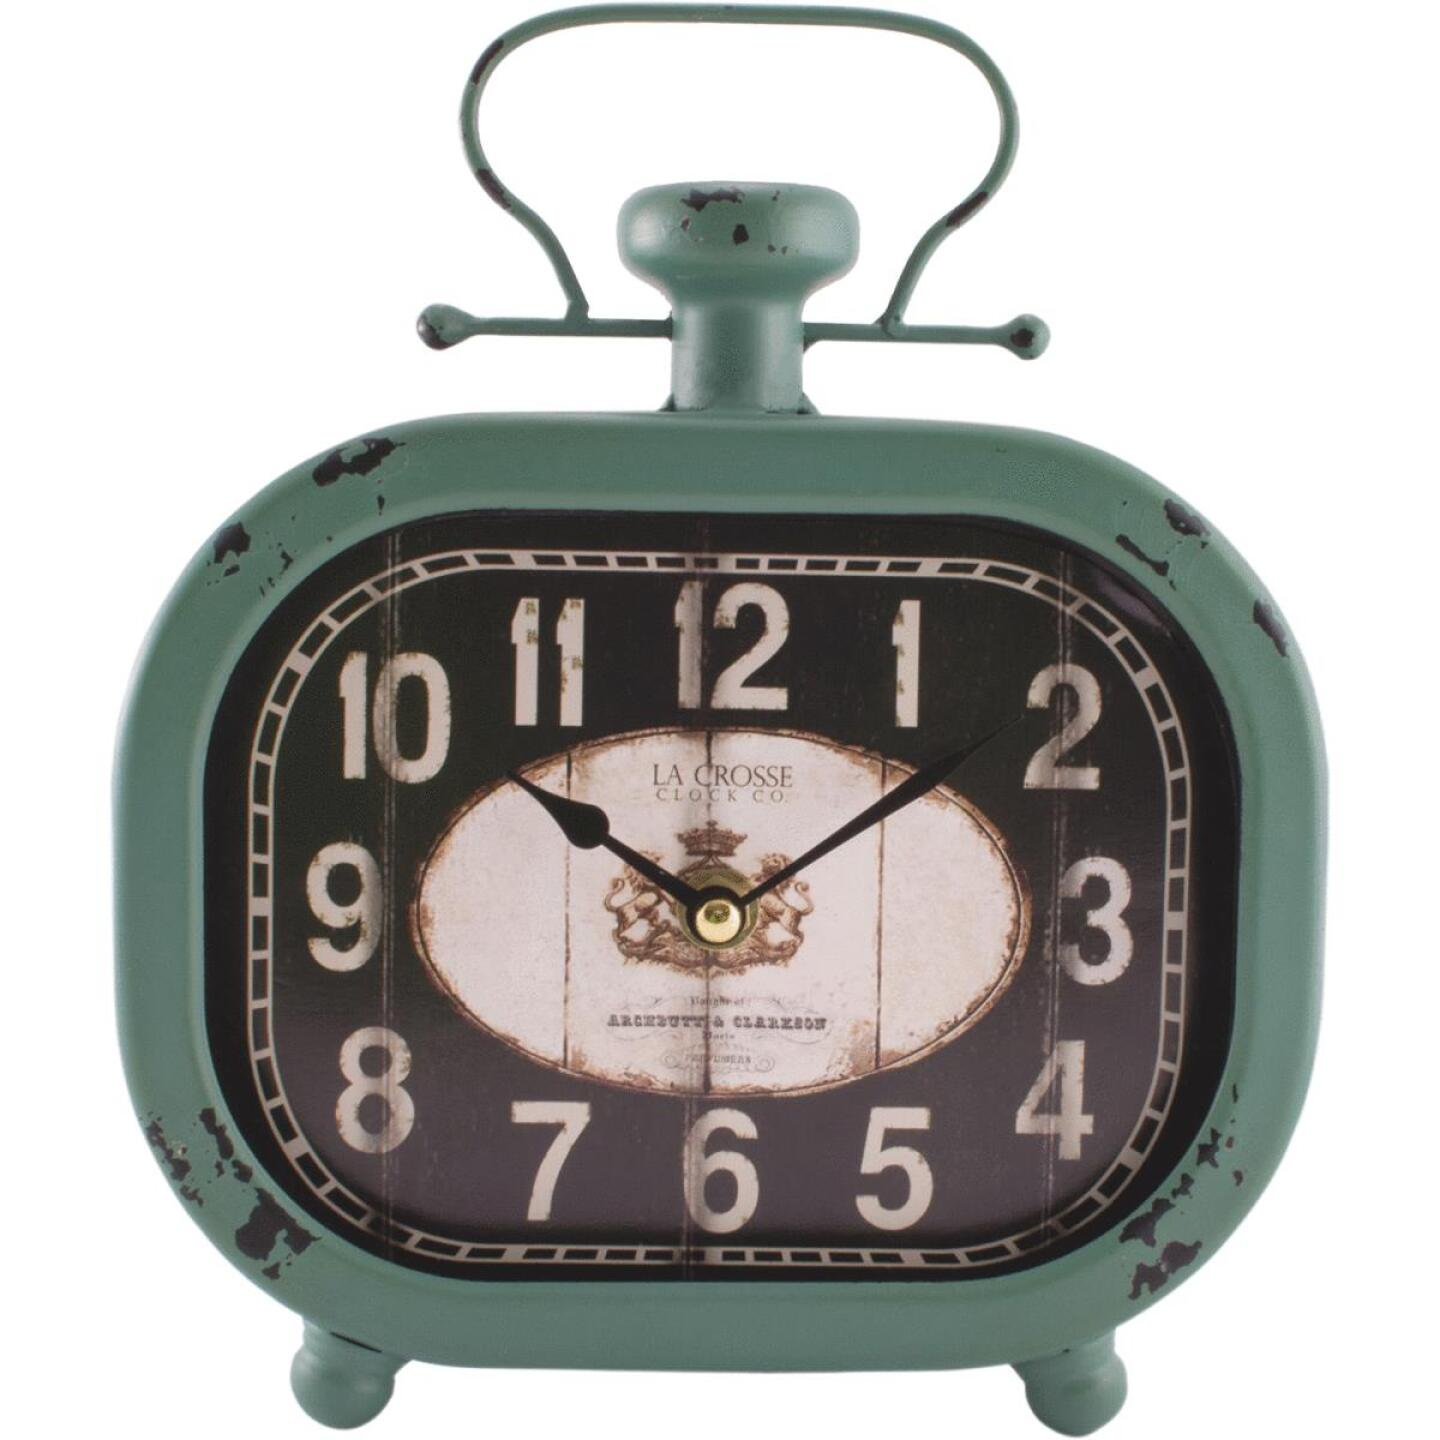 La Crosse Clock Analog Metal Battery Operated Clock Image 1